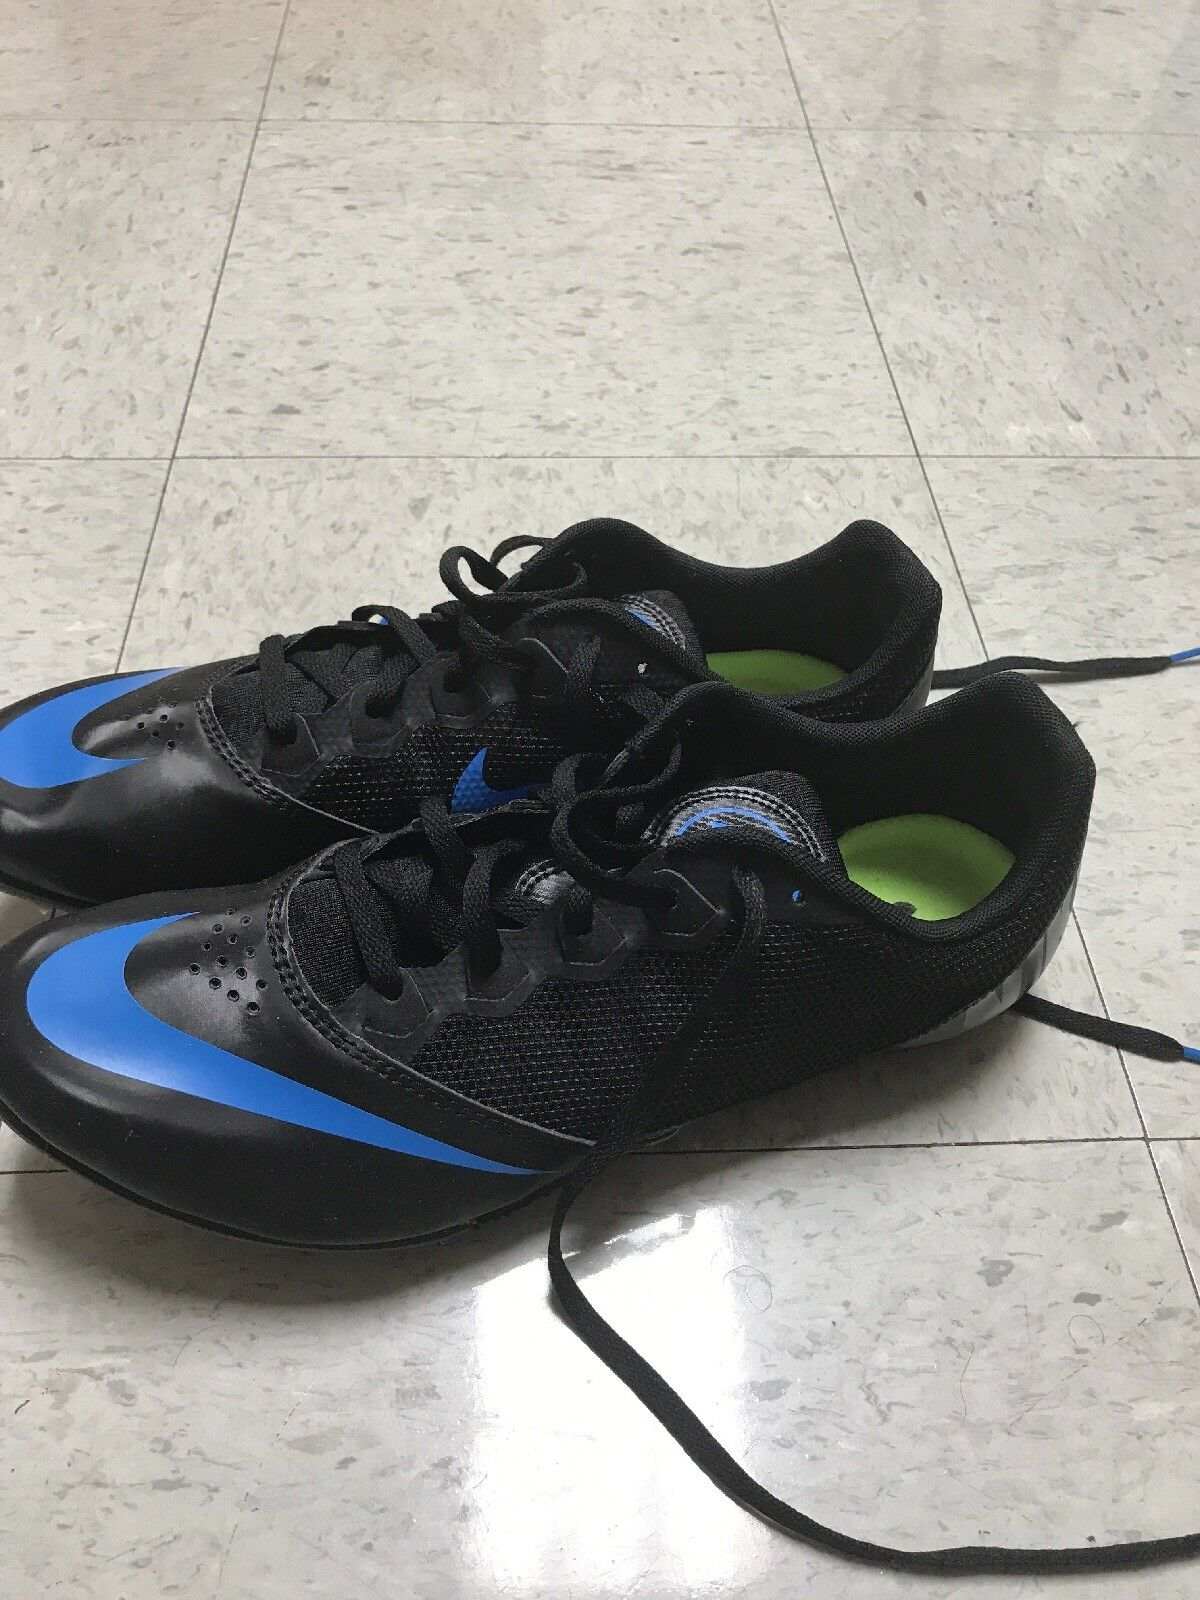 Nike Zoom Rival MD 8 Men's Track Shoes Sz 13 806555-035 Sprint Black Green Fast 806555-035 13 97512a